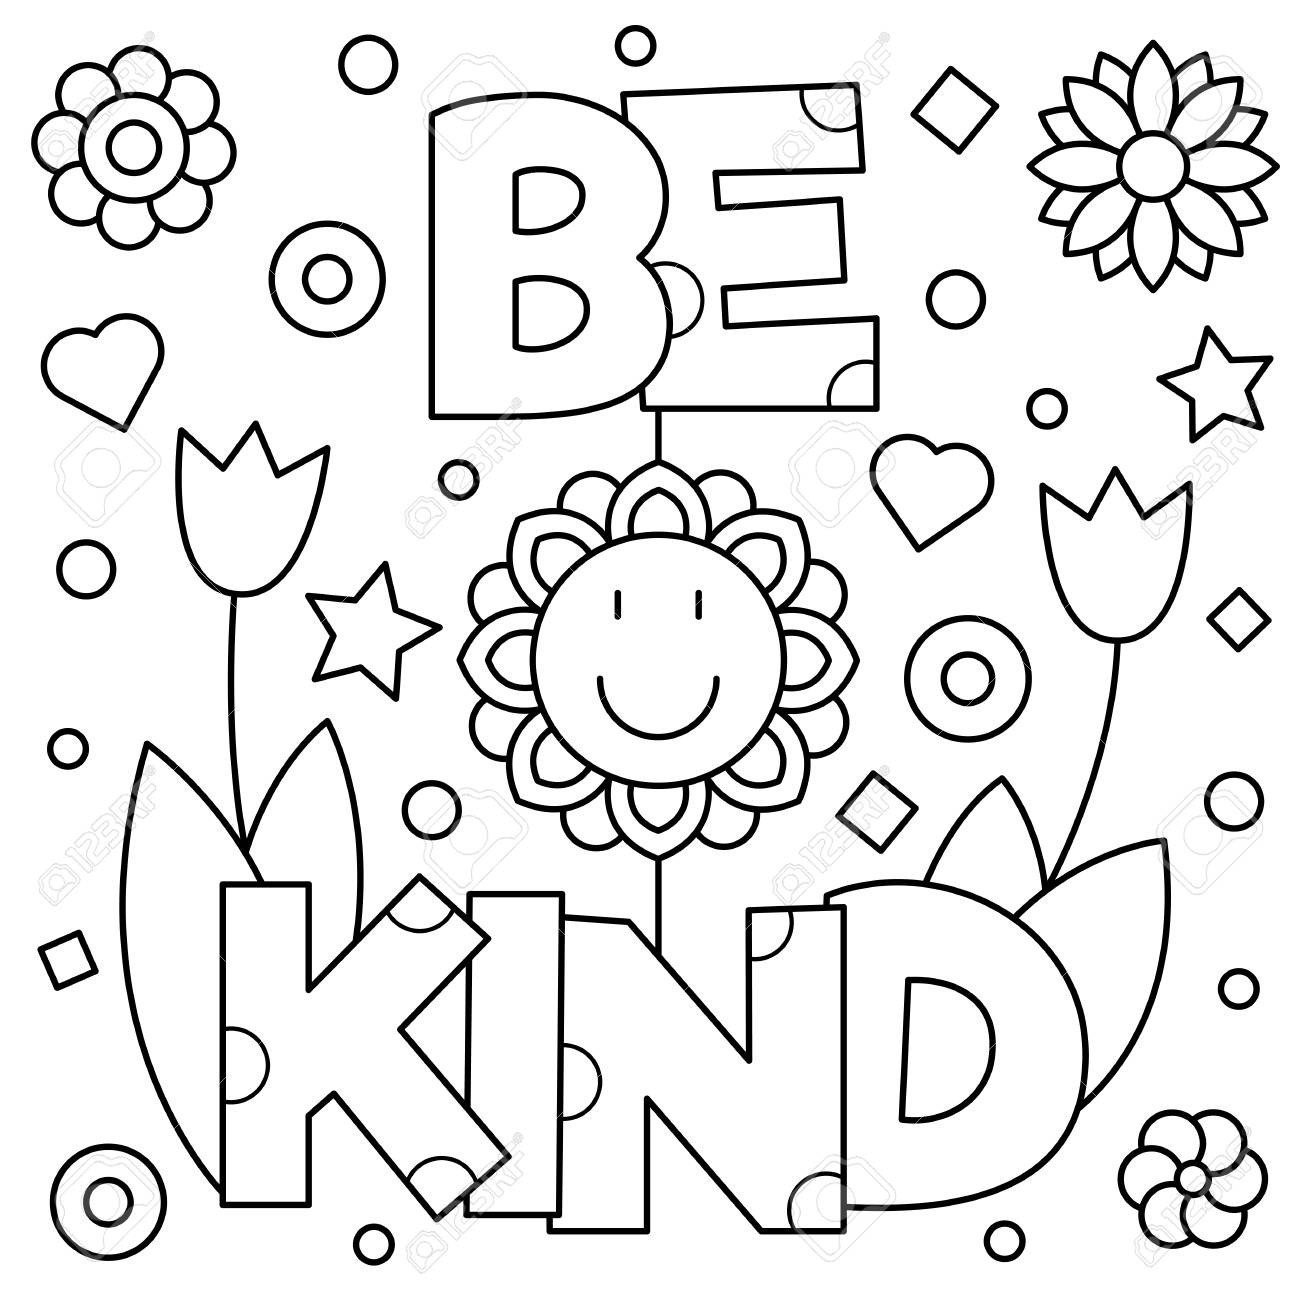 Be Kind Coloring Page At Getcolorings